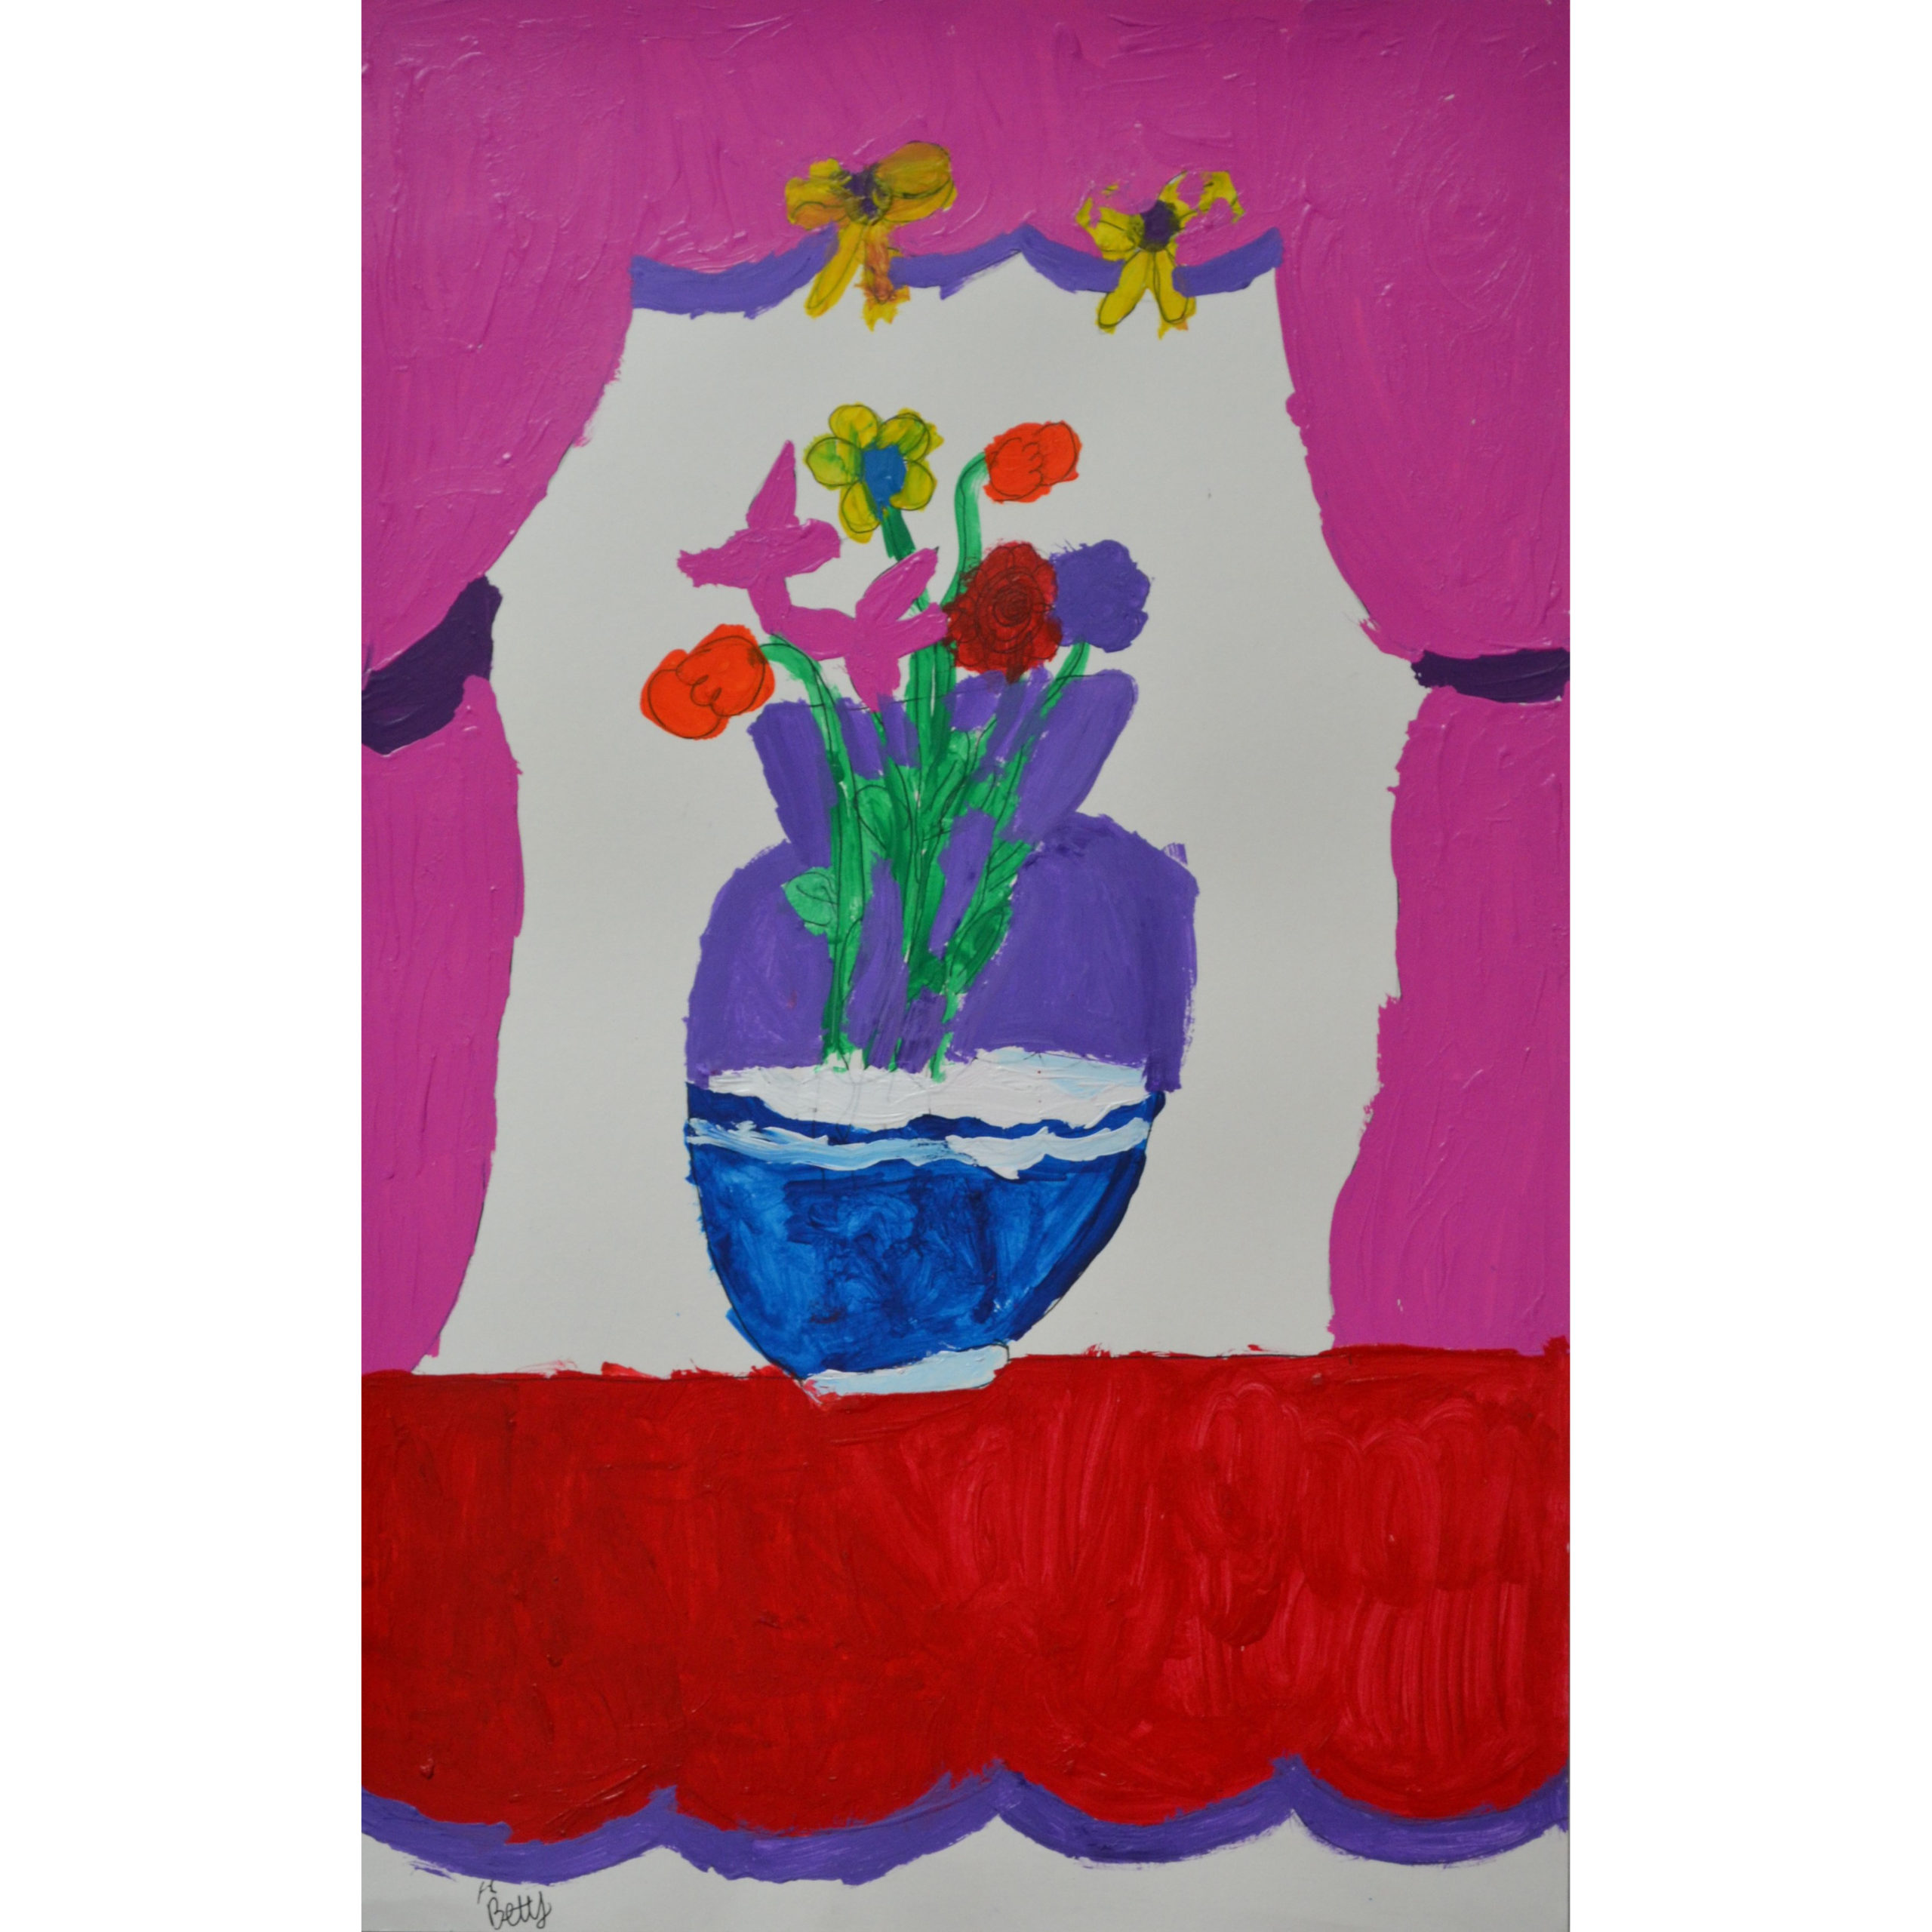 Untitled (vase and drapes) by Betty Antoine